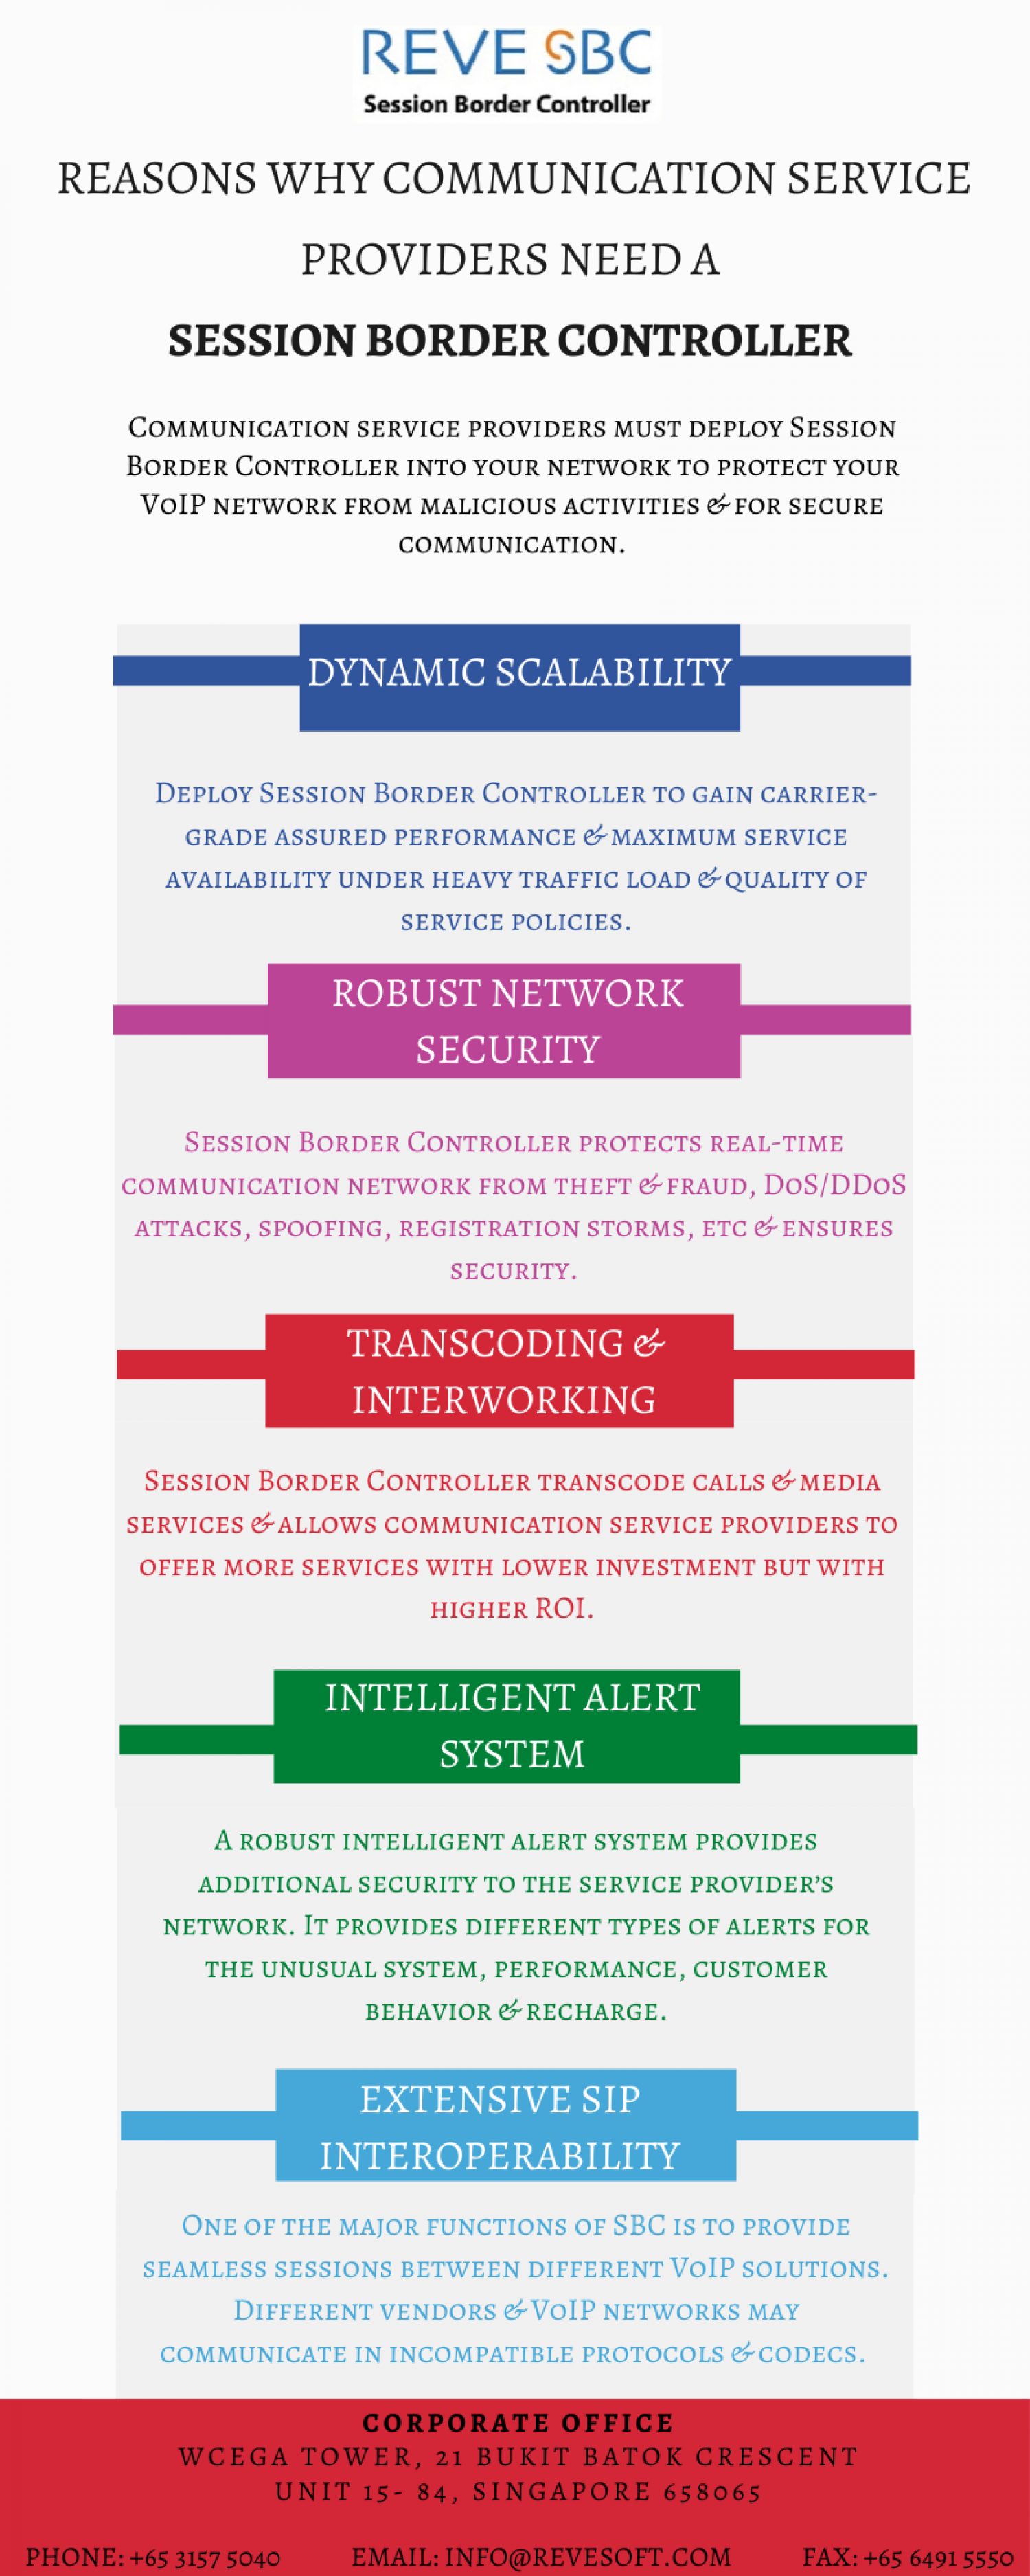 Reasons Why Communication Service Providers Need A Session Border Controller Infographic